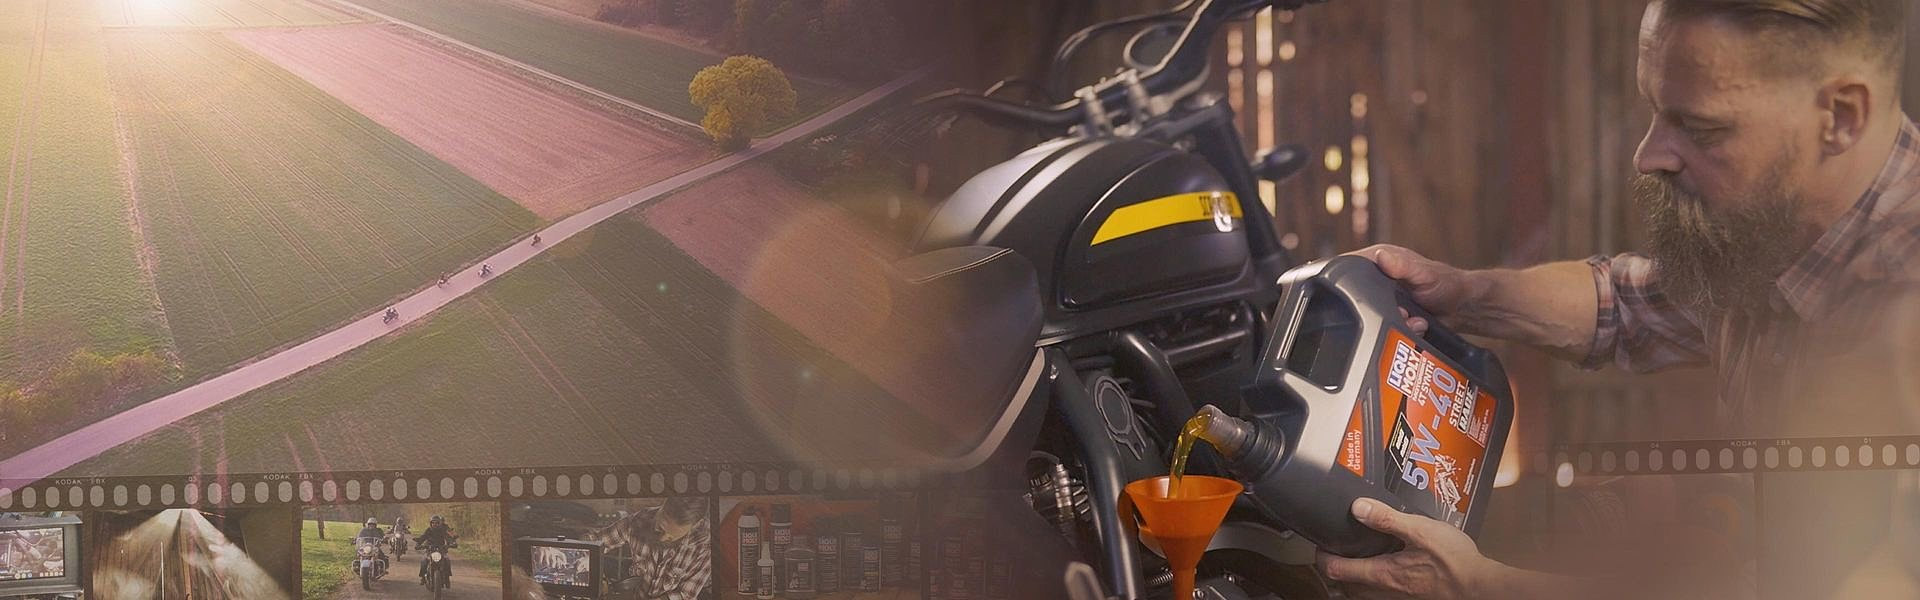 csm_slider_bike_3840x1200_68a33d4a31